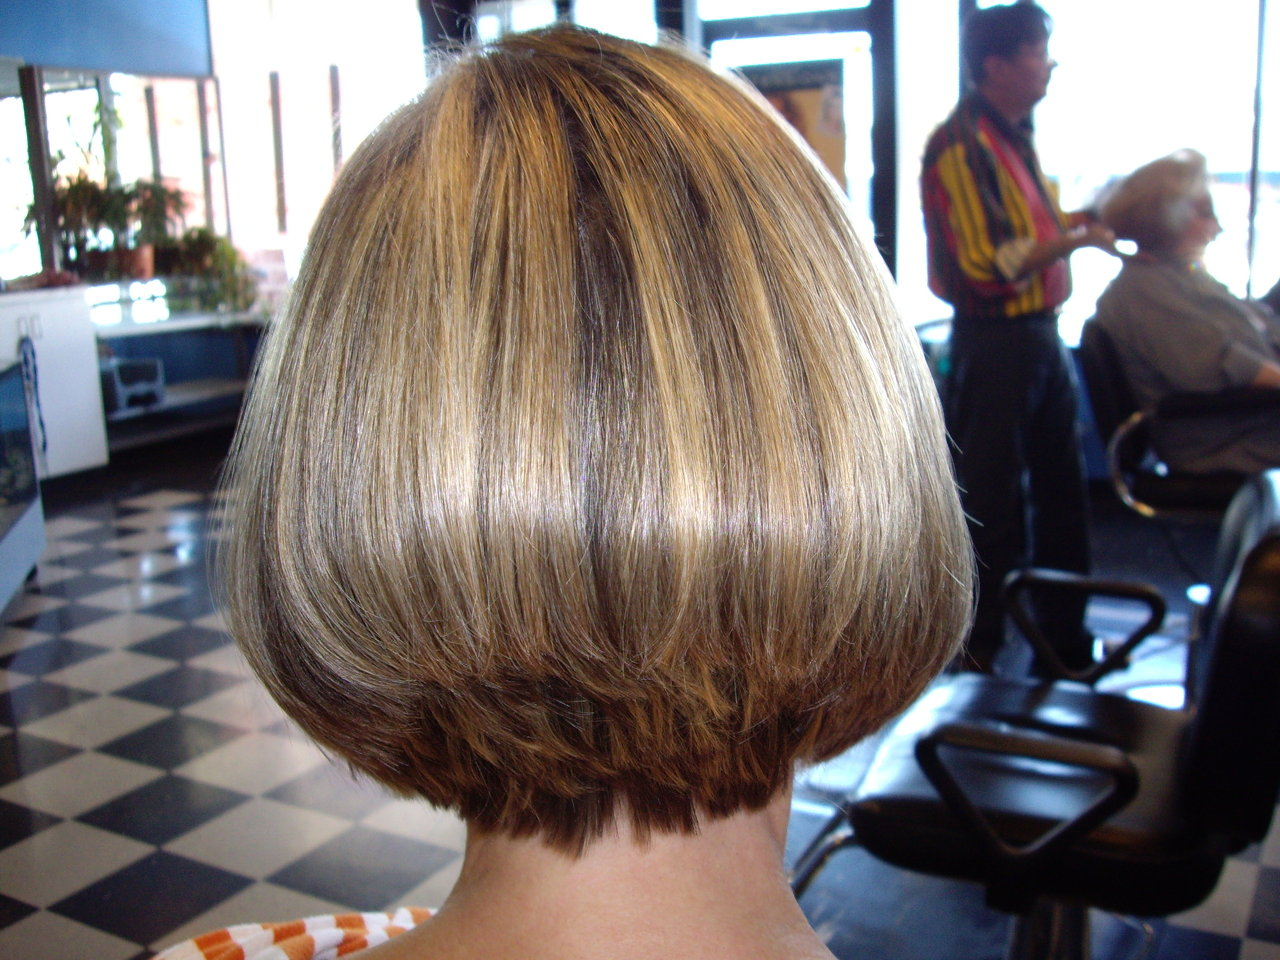 Hair Style Short Bob: Celebrity Hairstyle: Stacked Hairstyles